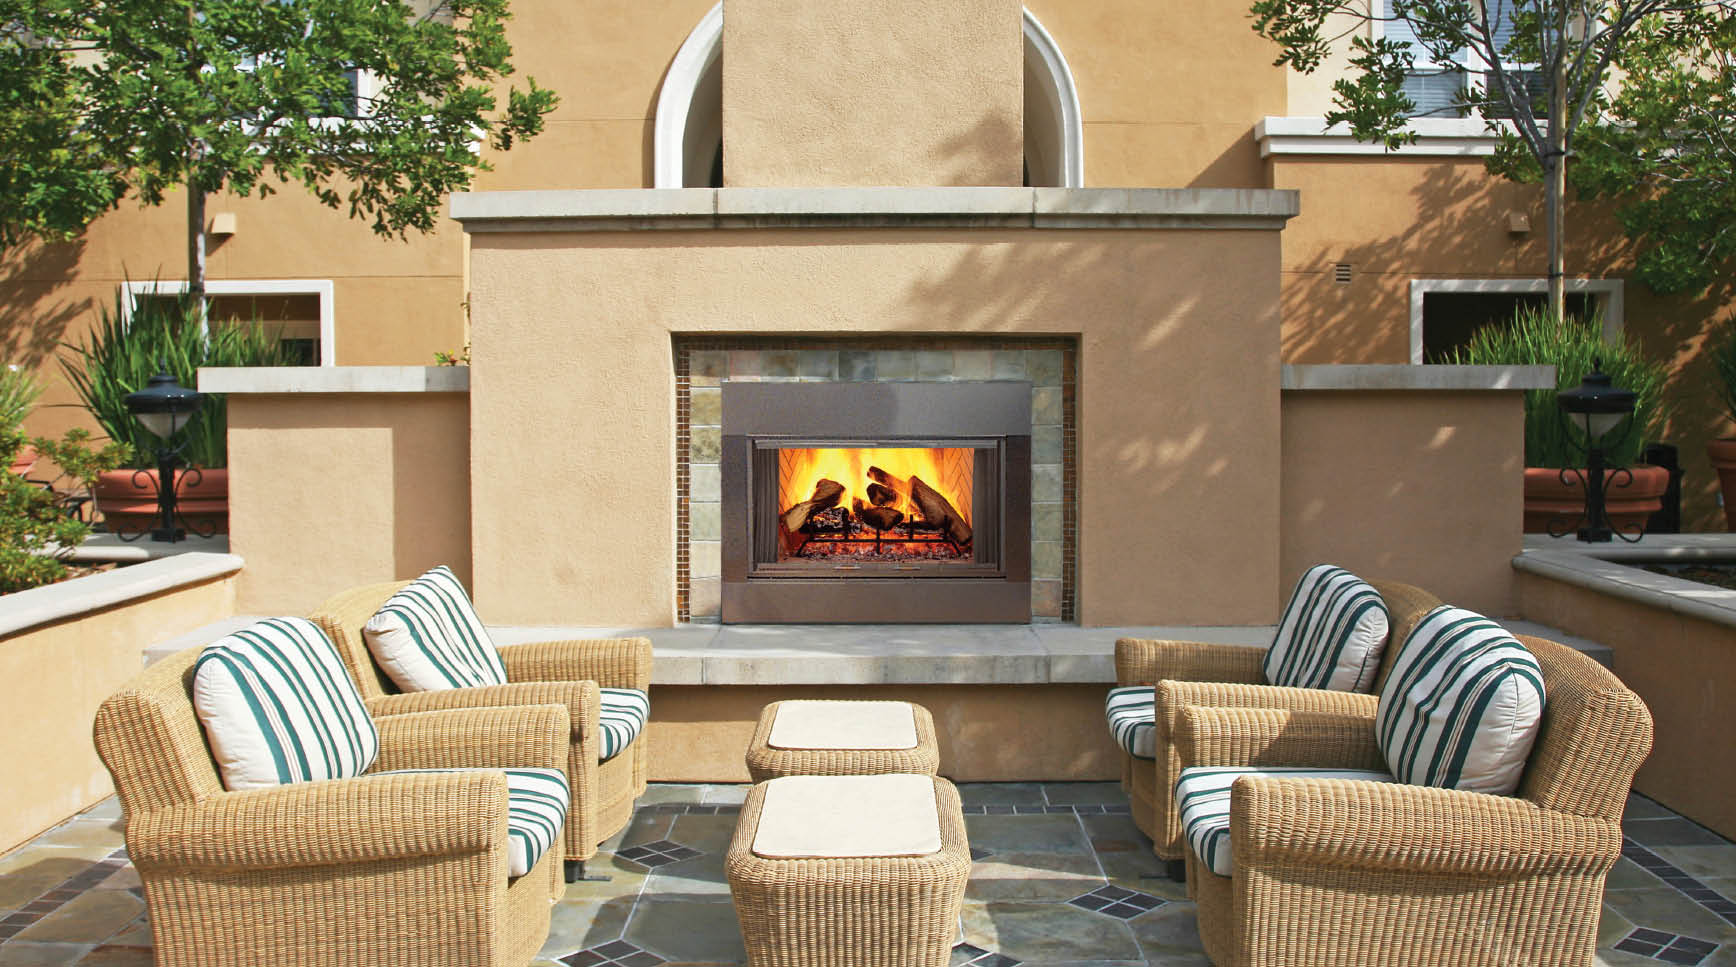 Top 21 designs for the outdoor fireplace qnud for Outdoor gas fireplace designs